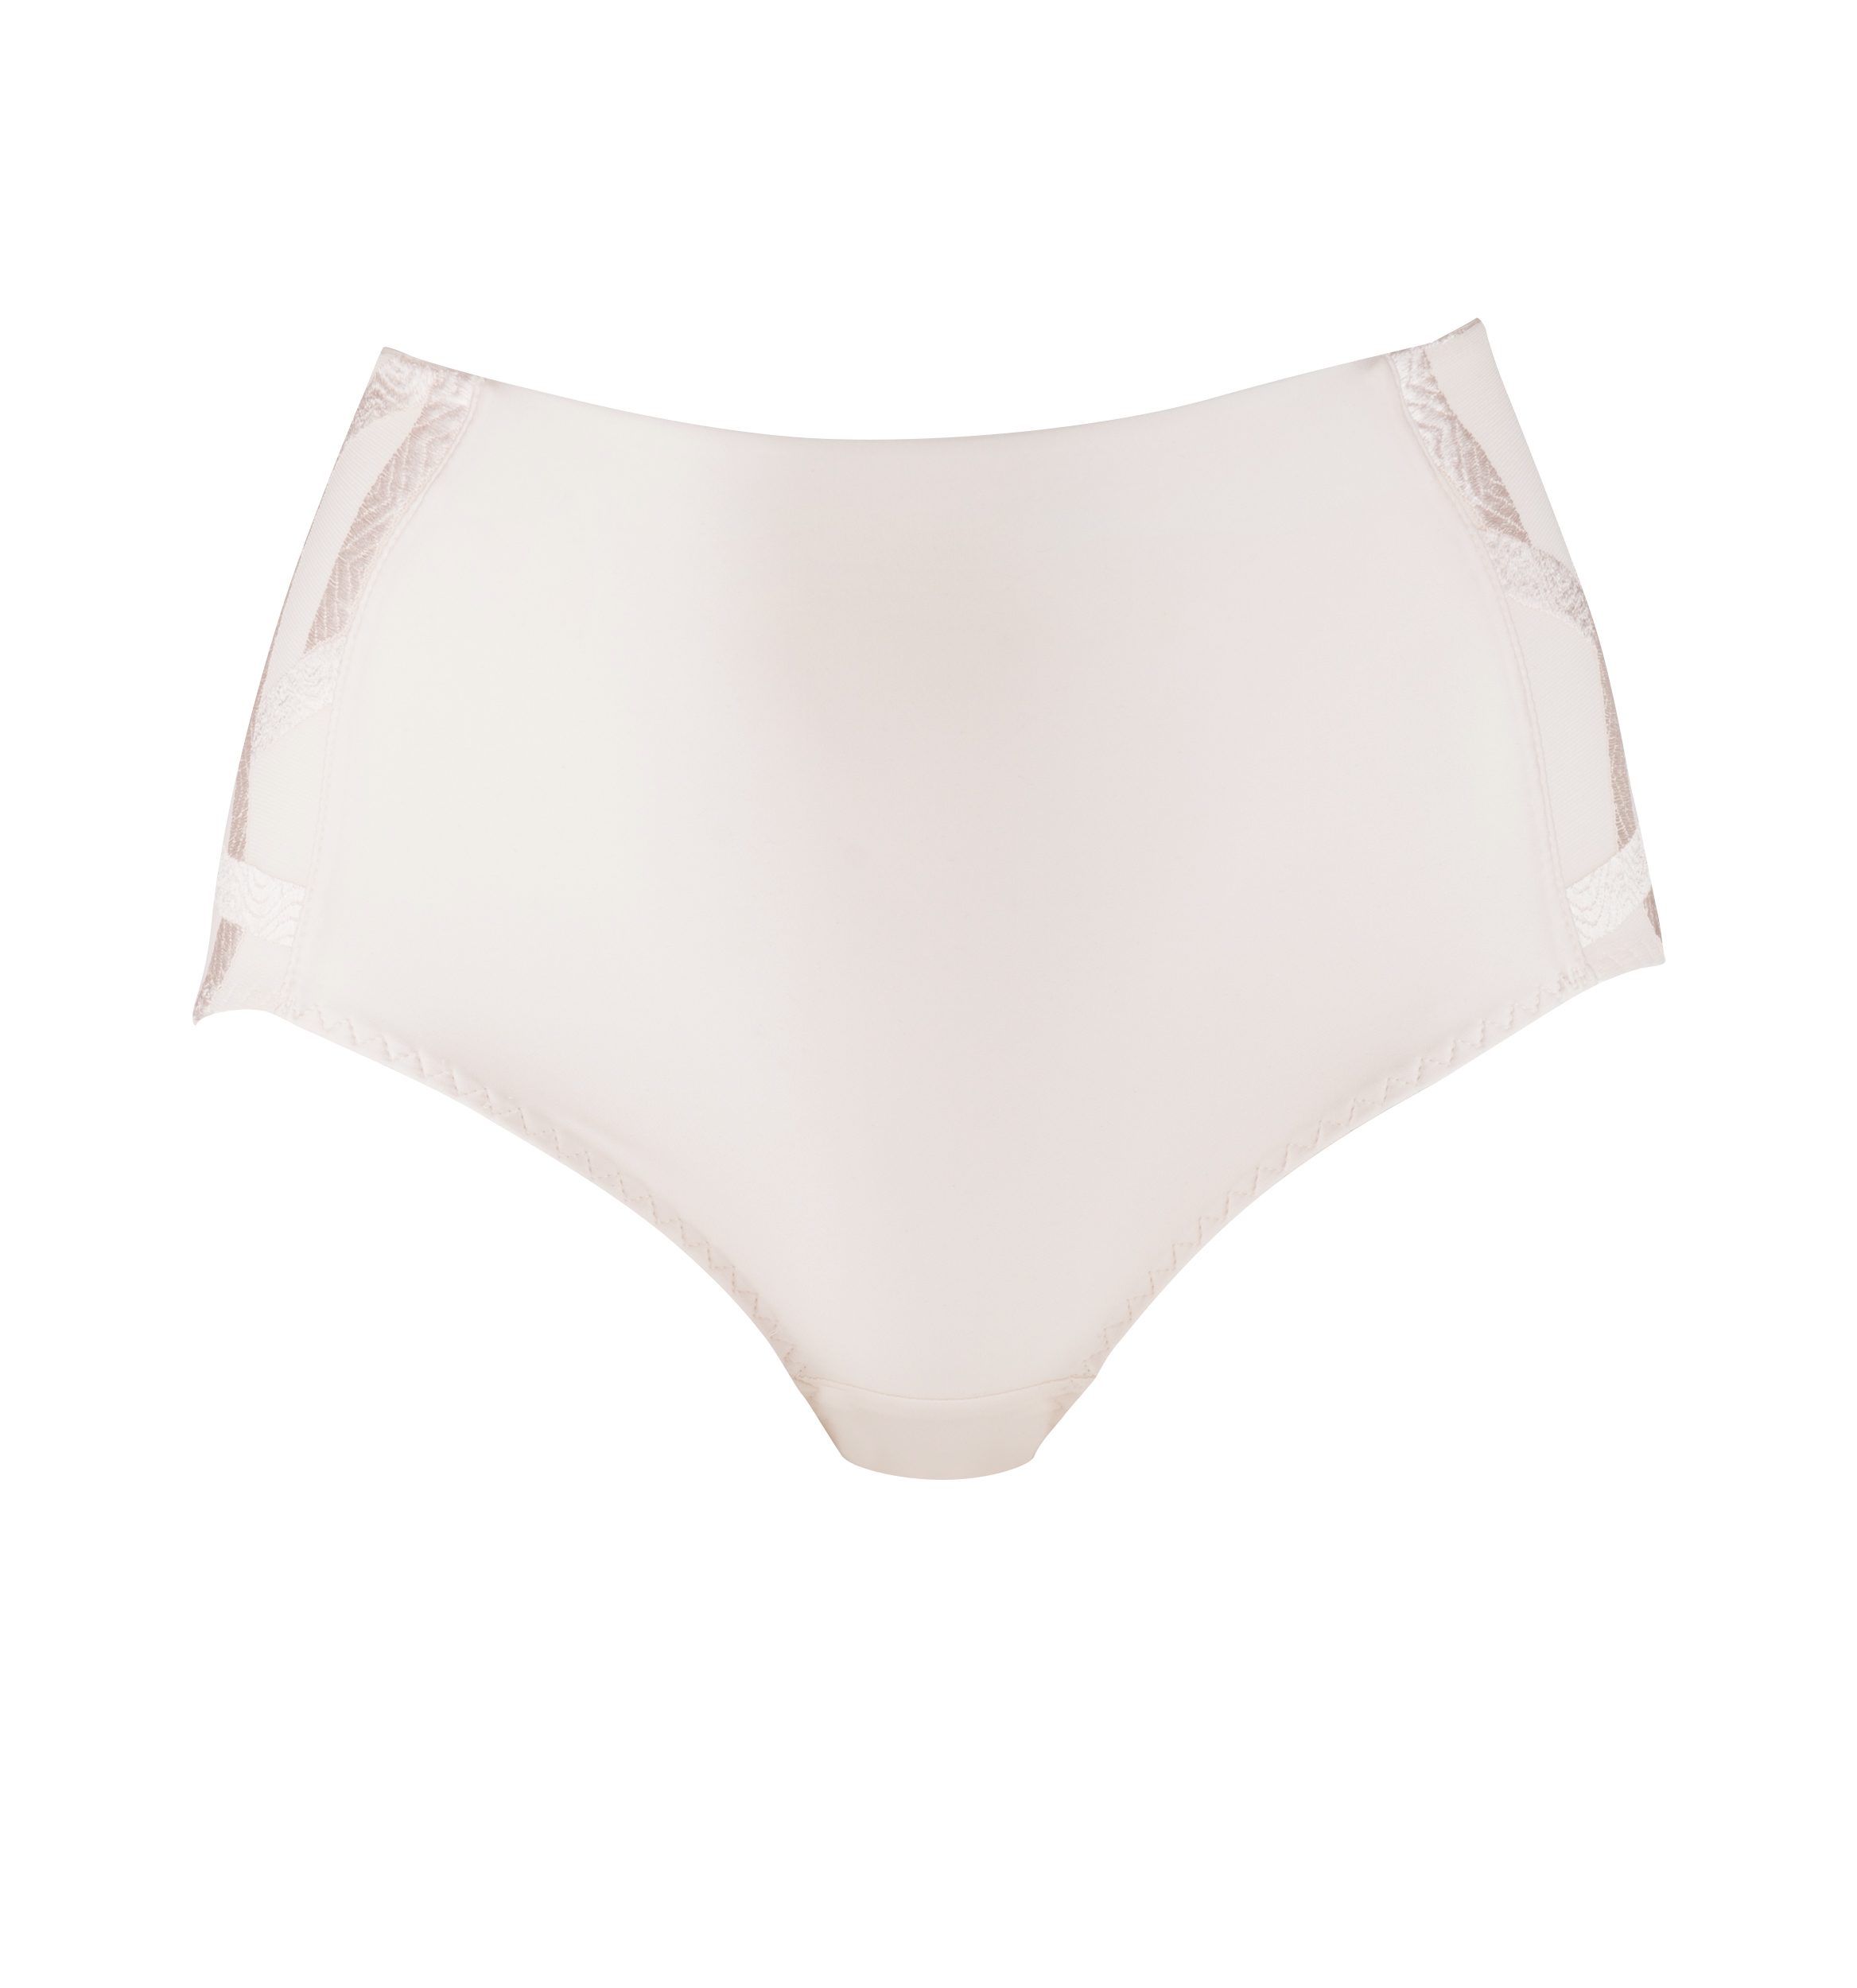 Culotte Gainante - 47170Guide de tailleFR 36 - 56 EU 36 - 54 US XS - 6XL UK 10 - 28Trouvez le point de vente le plus proche de chez vous sous-garantie des stocks disponibles du distributeur.Couleur : Soie